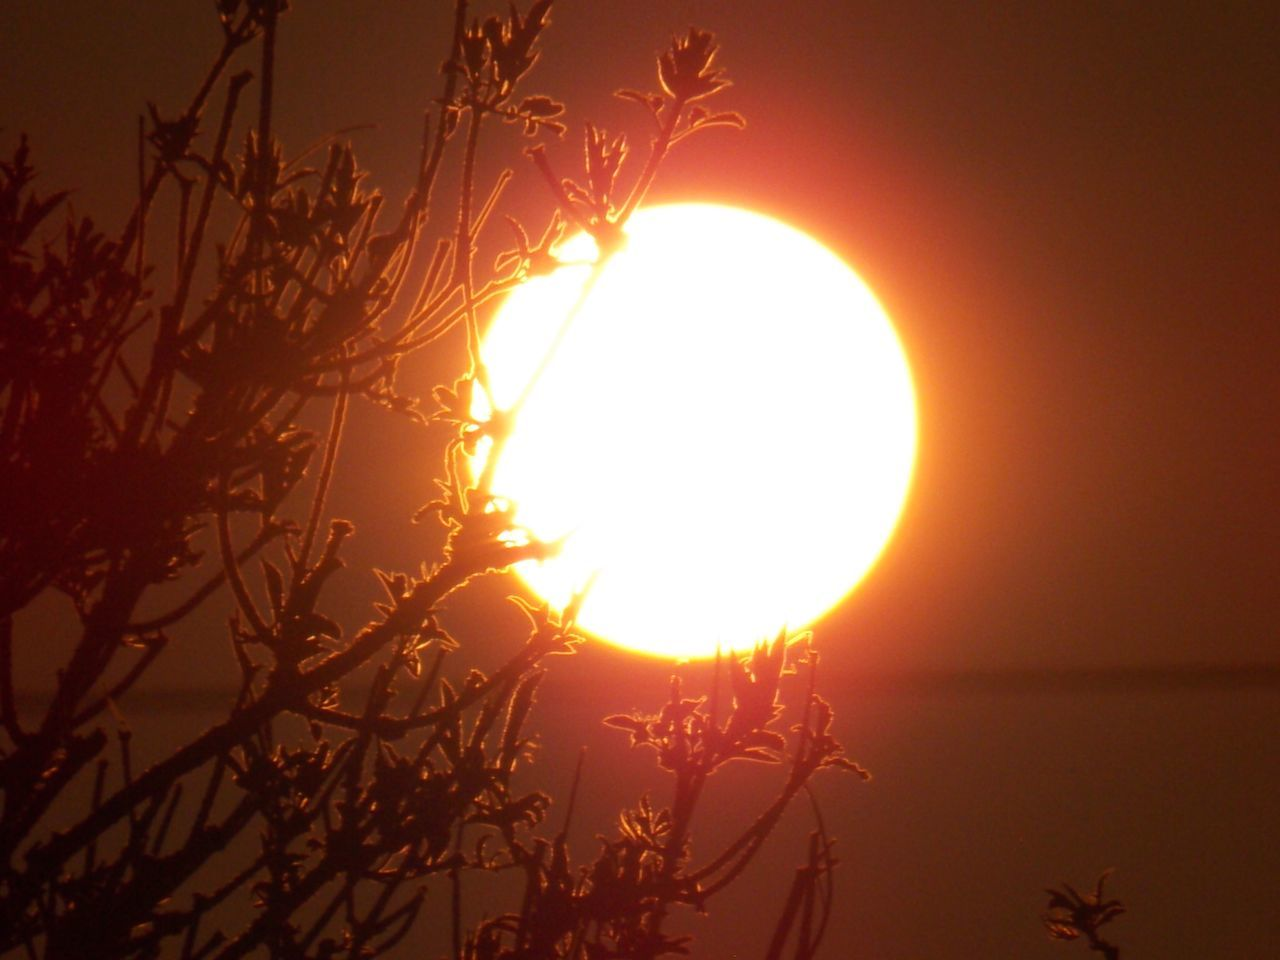 sun, sunset, beauty in nature, nature, scenics, silhouette, sunlight, tranquil scene, outdoors, orange color, sky, low angle view, no people, moon, tree, tranquility, growth, plant, clear sky, branch, close-up, day, astronomy